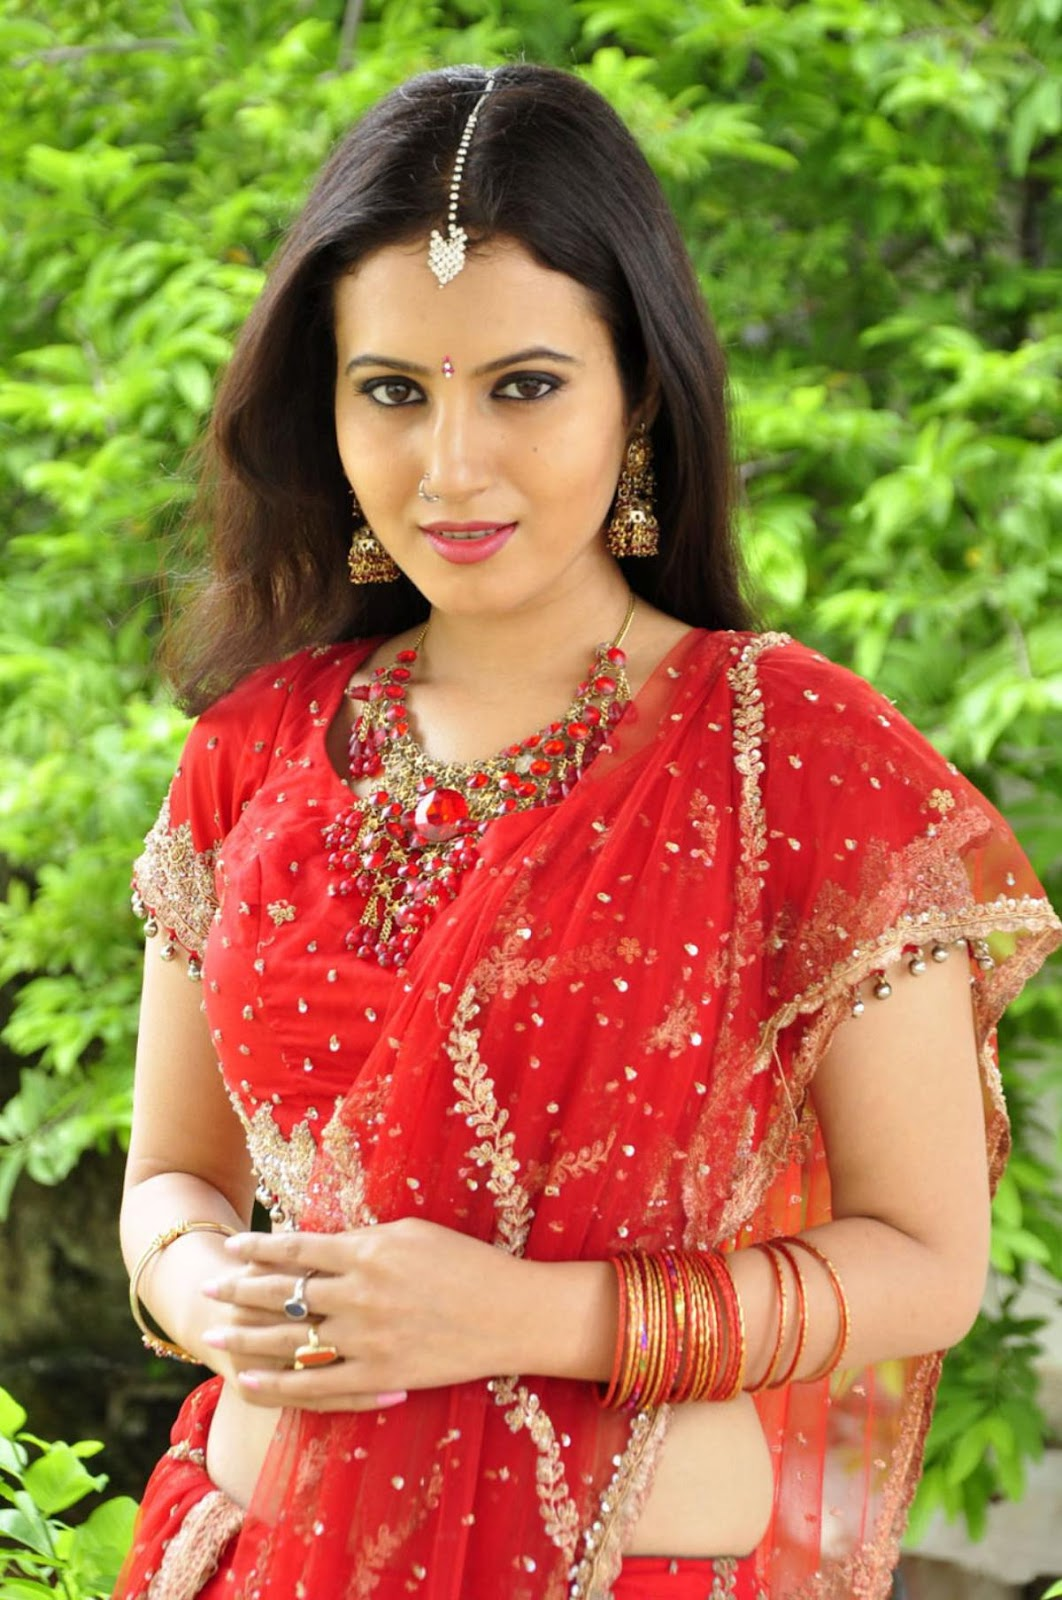 Girls Are My Weakness Anu Smruthi Telugu Actress In Red -7850